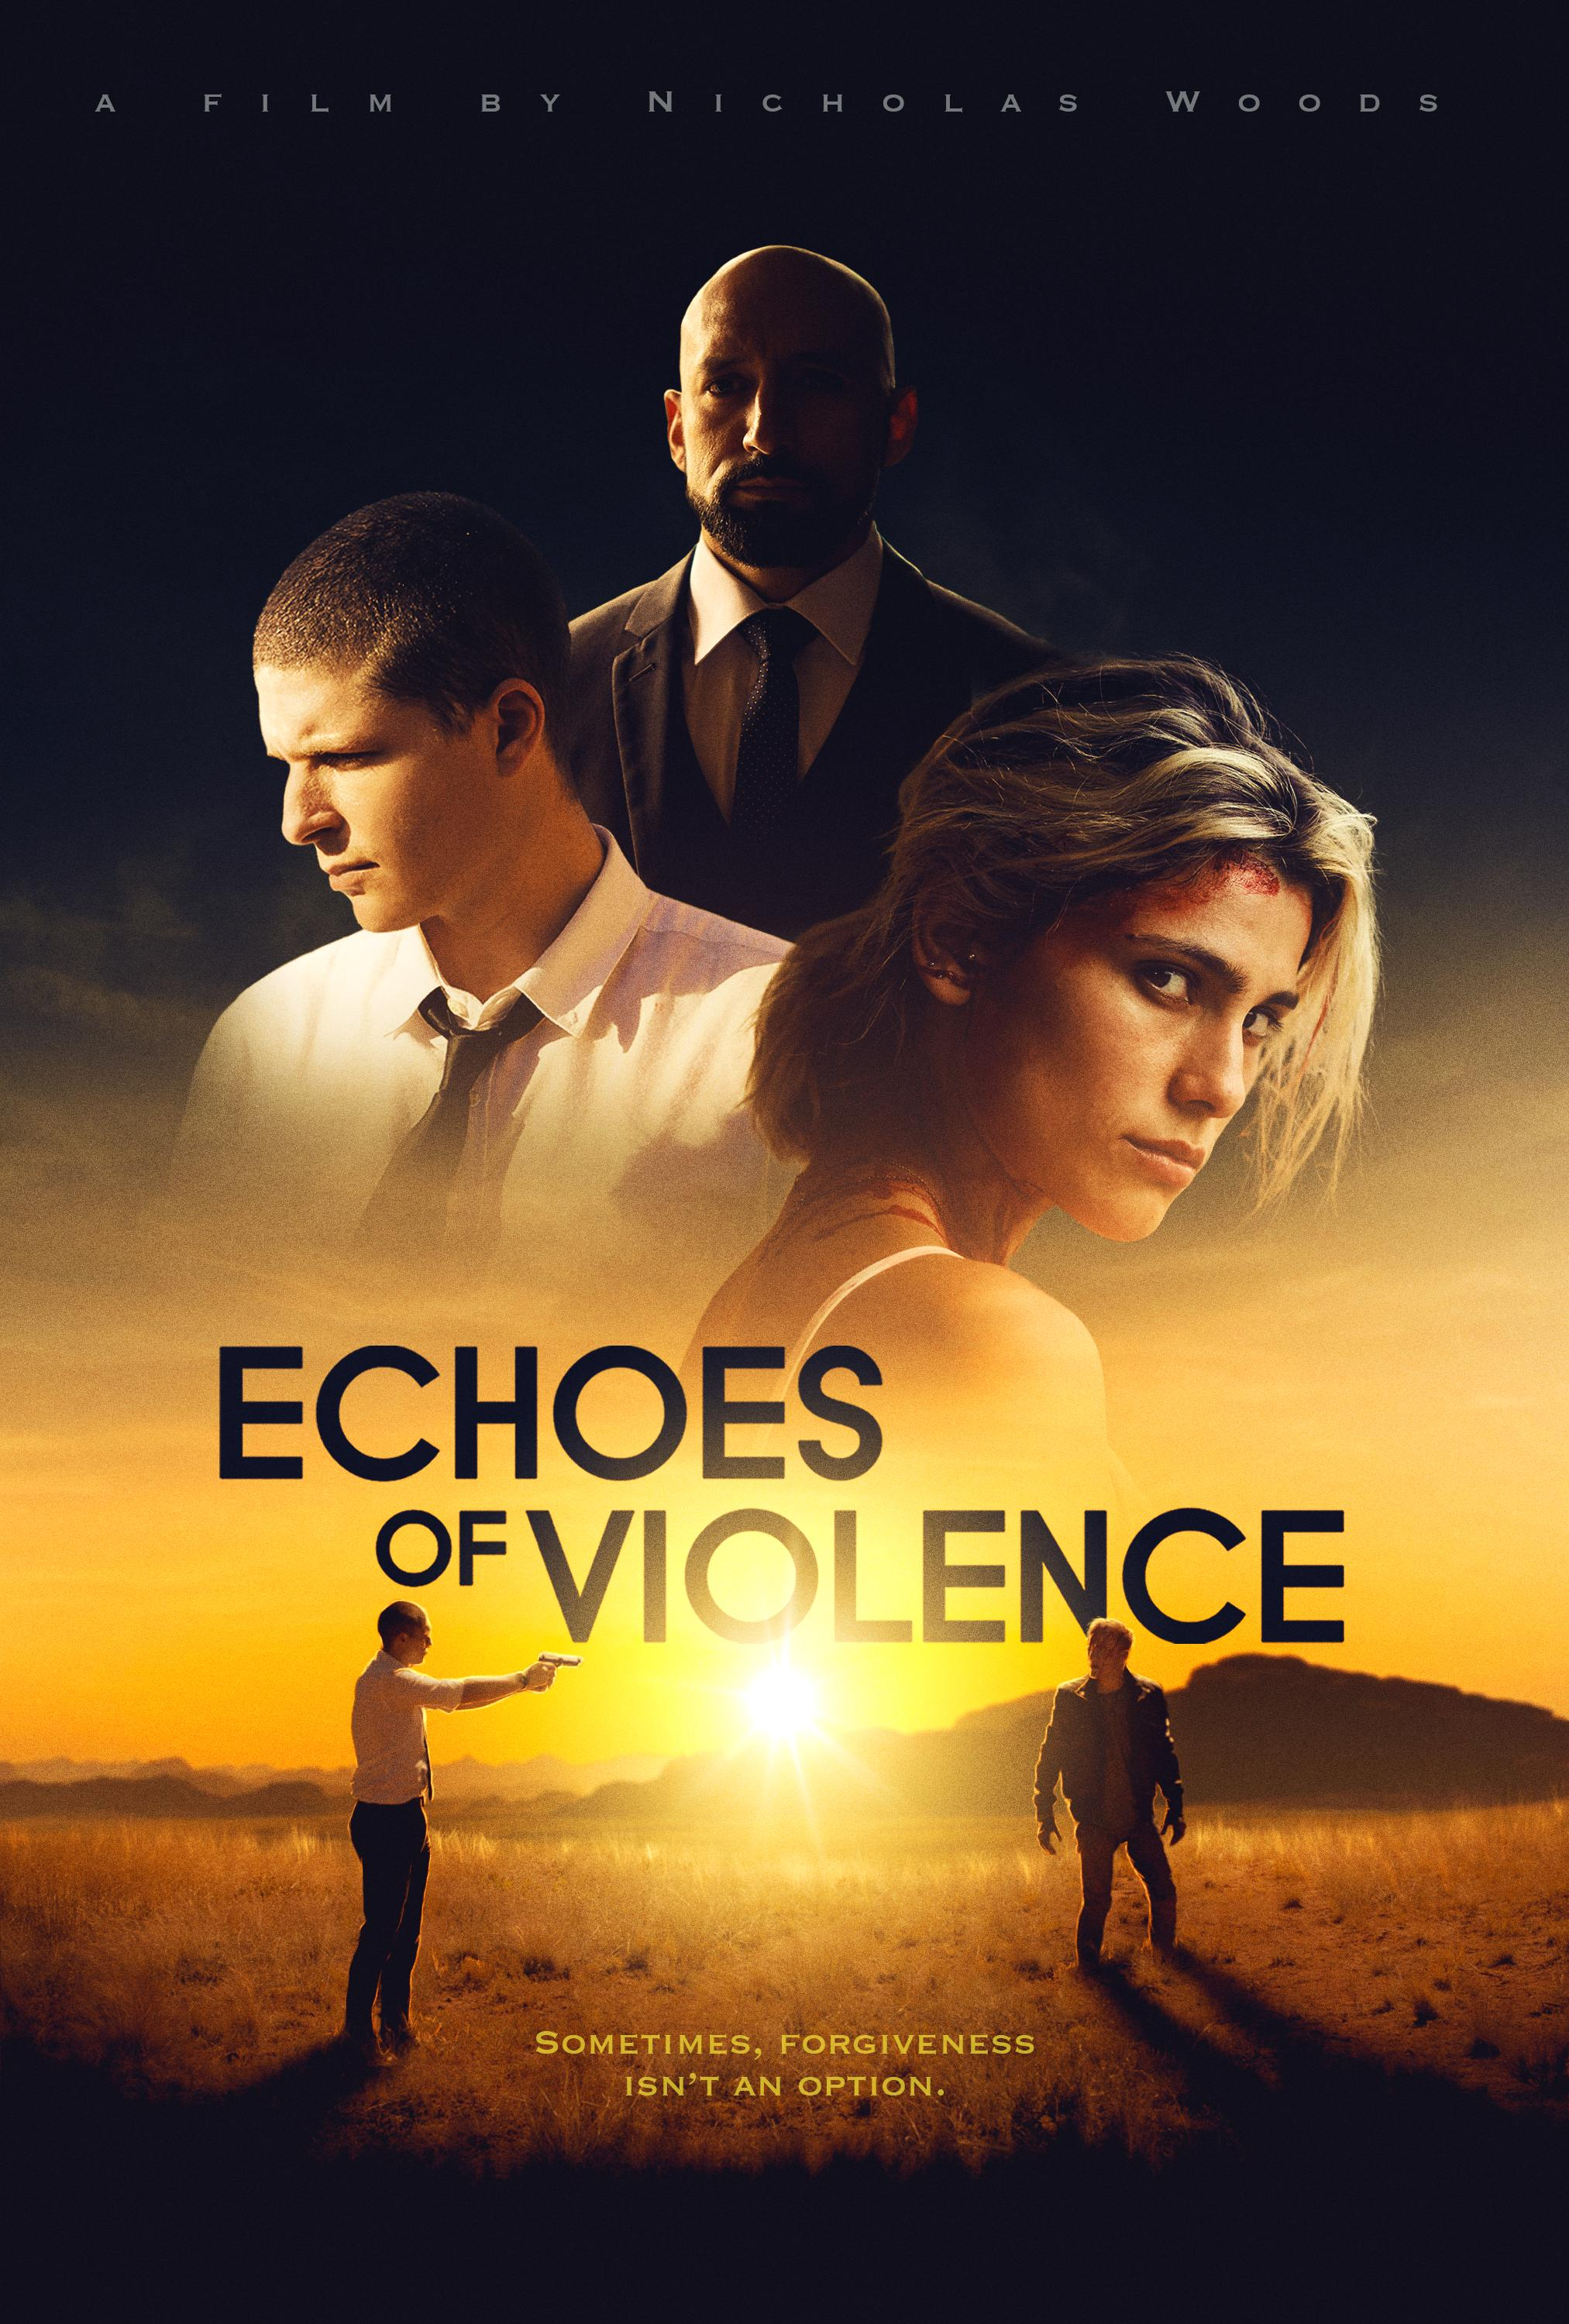 Download Echoes of Violence (2021) Bengali Dubbed (Voice Over) WEBRip 720p [Full Movie] 1XBET FREE on 1XCinema.com & KatMovieHD.sk